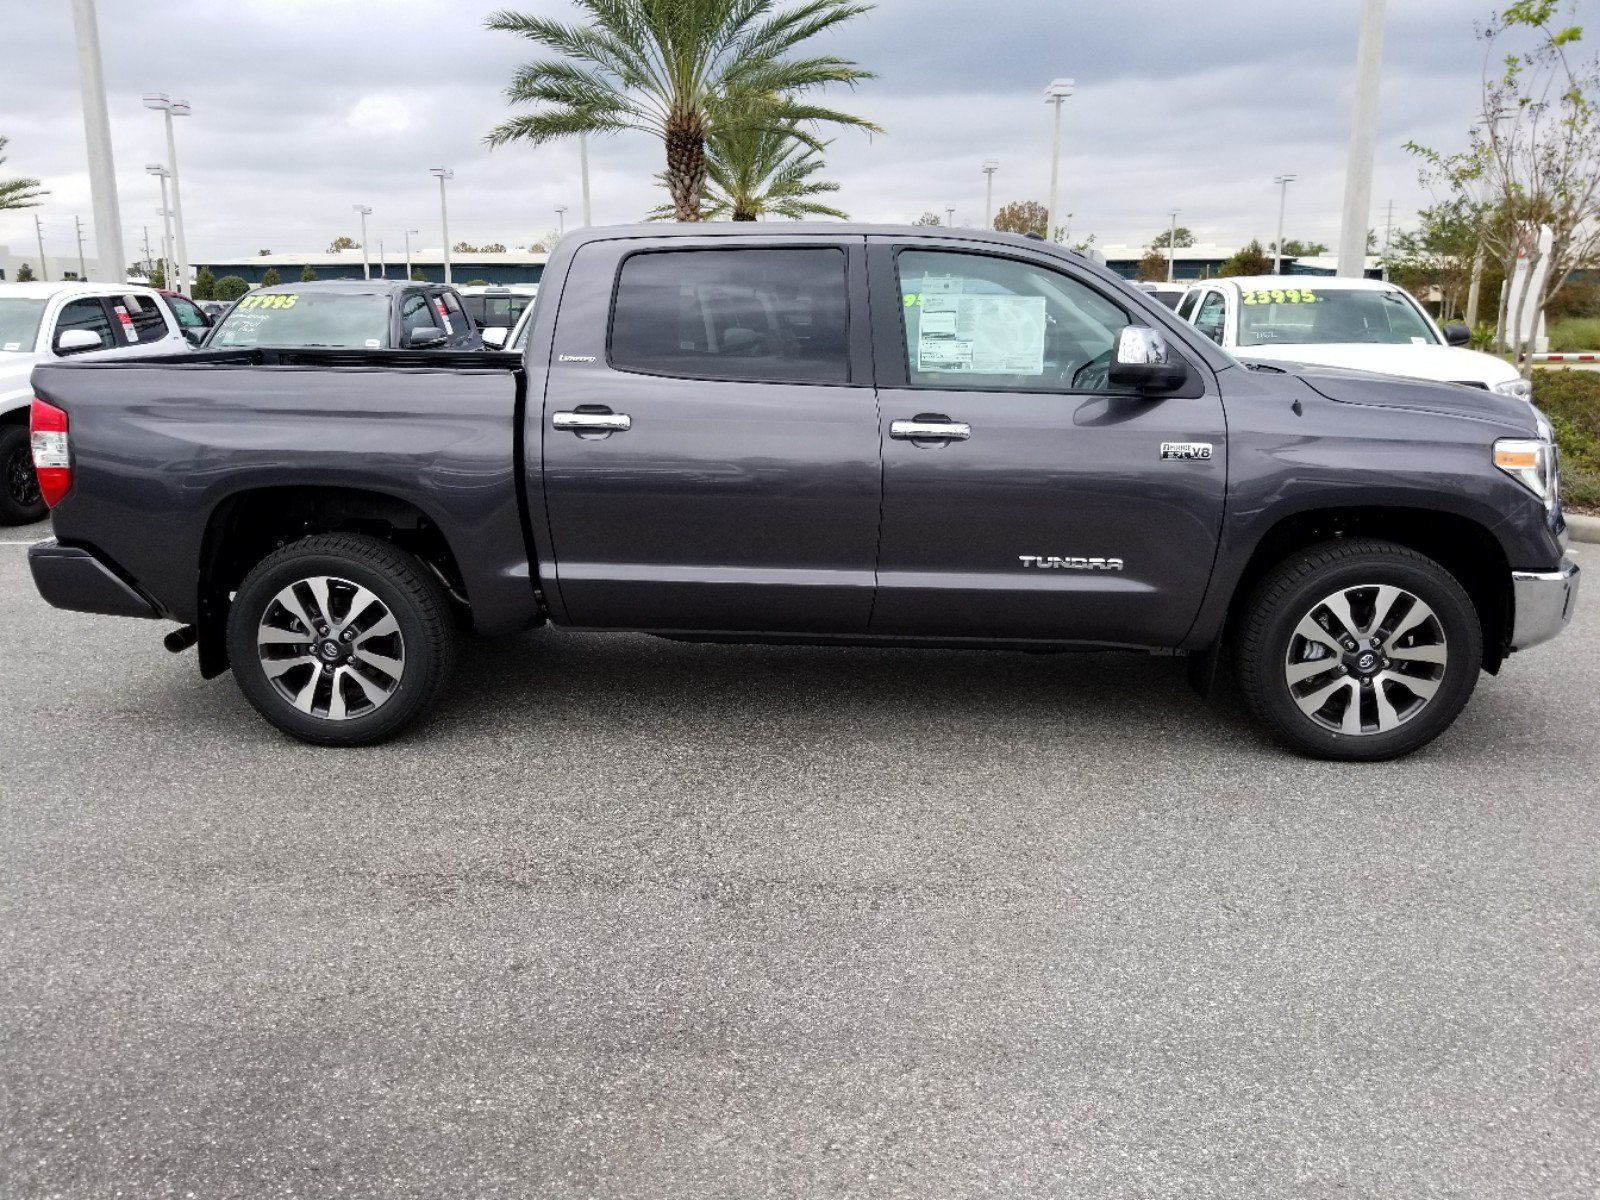 New 2018 Toyota Tundra Limited Crewmax In Orlando 8820014